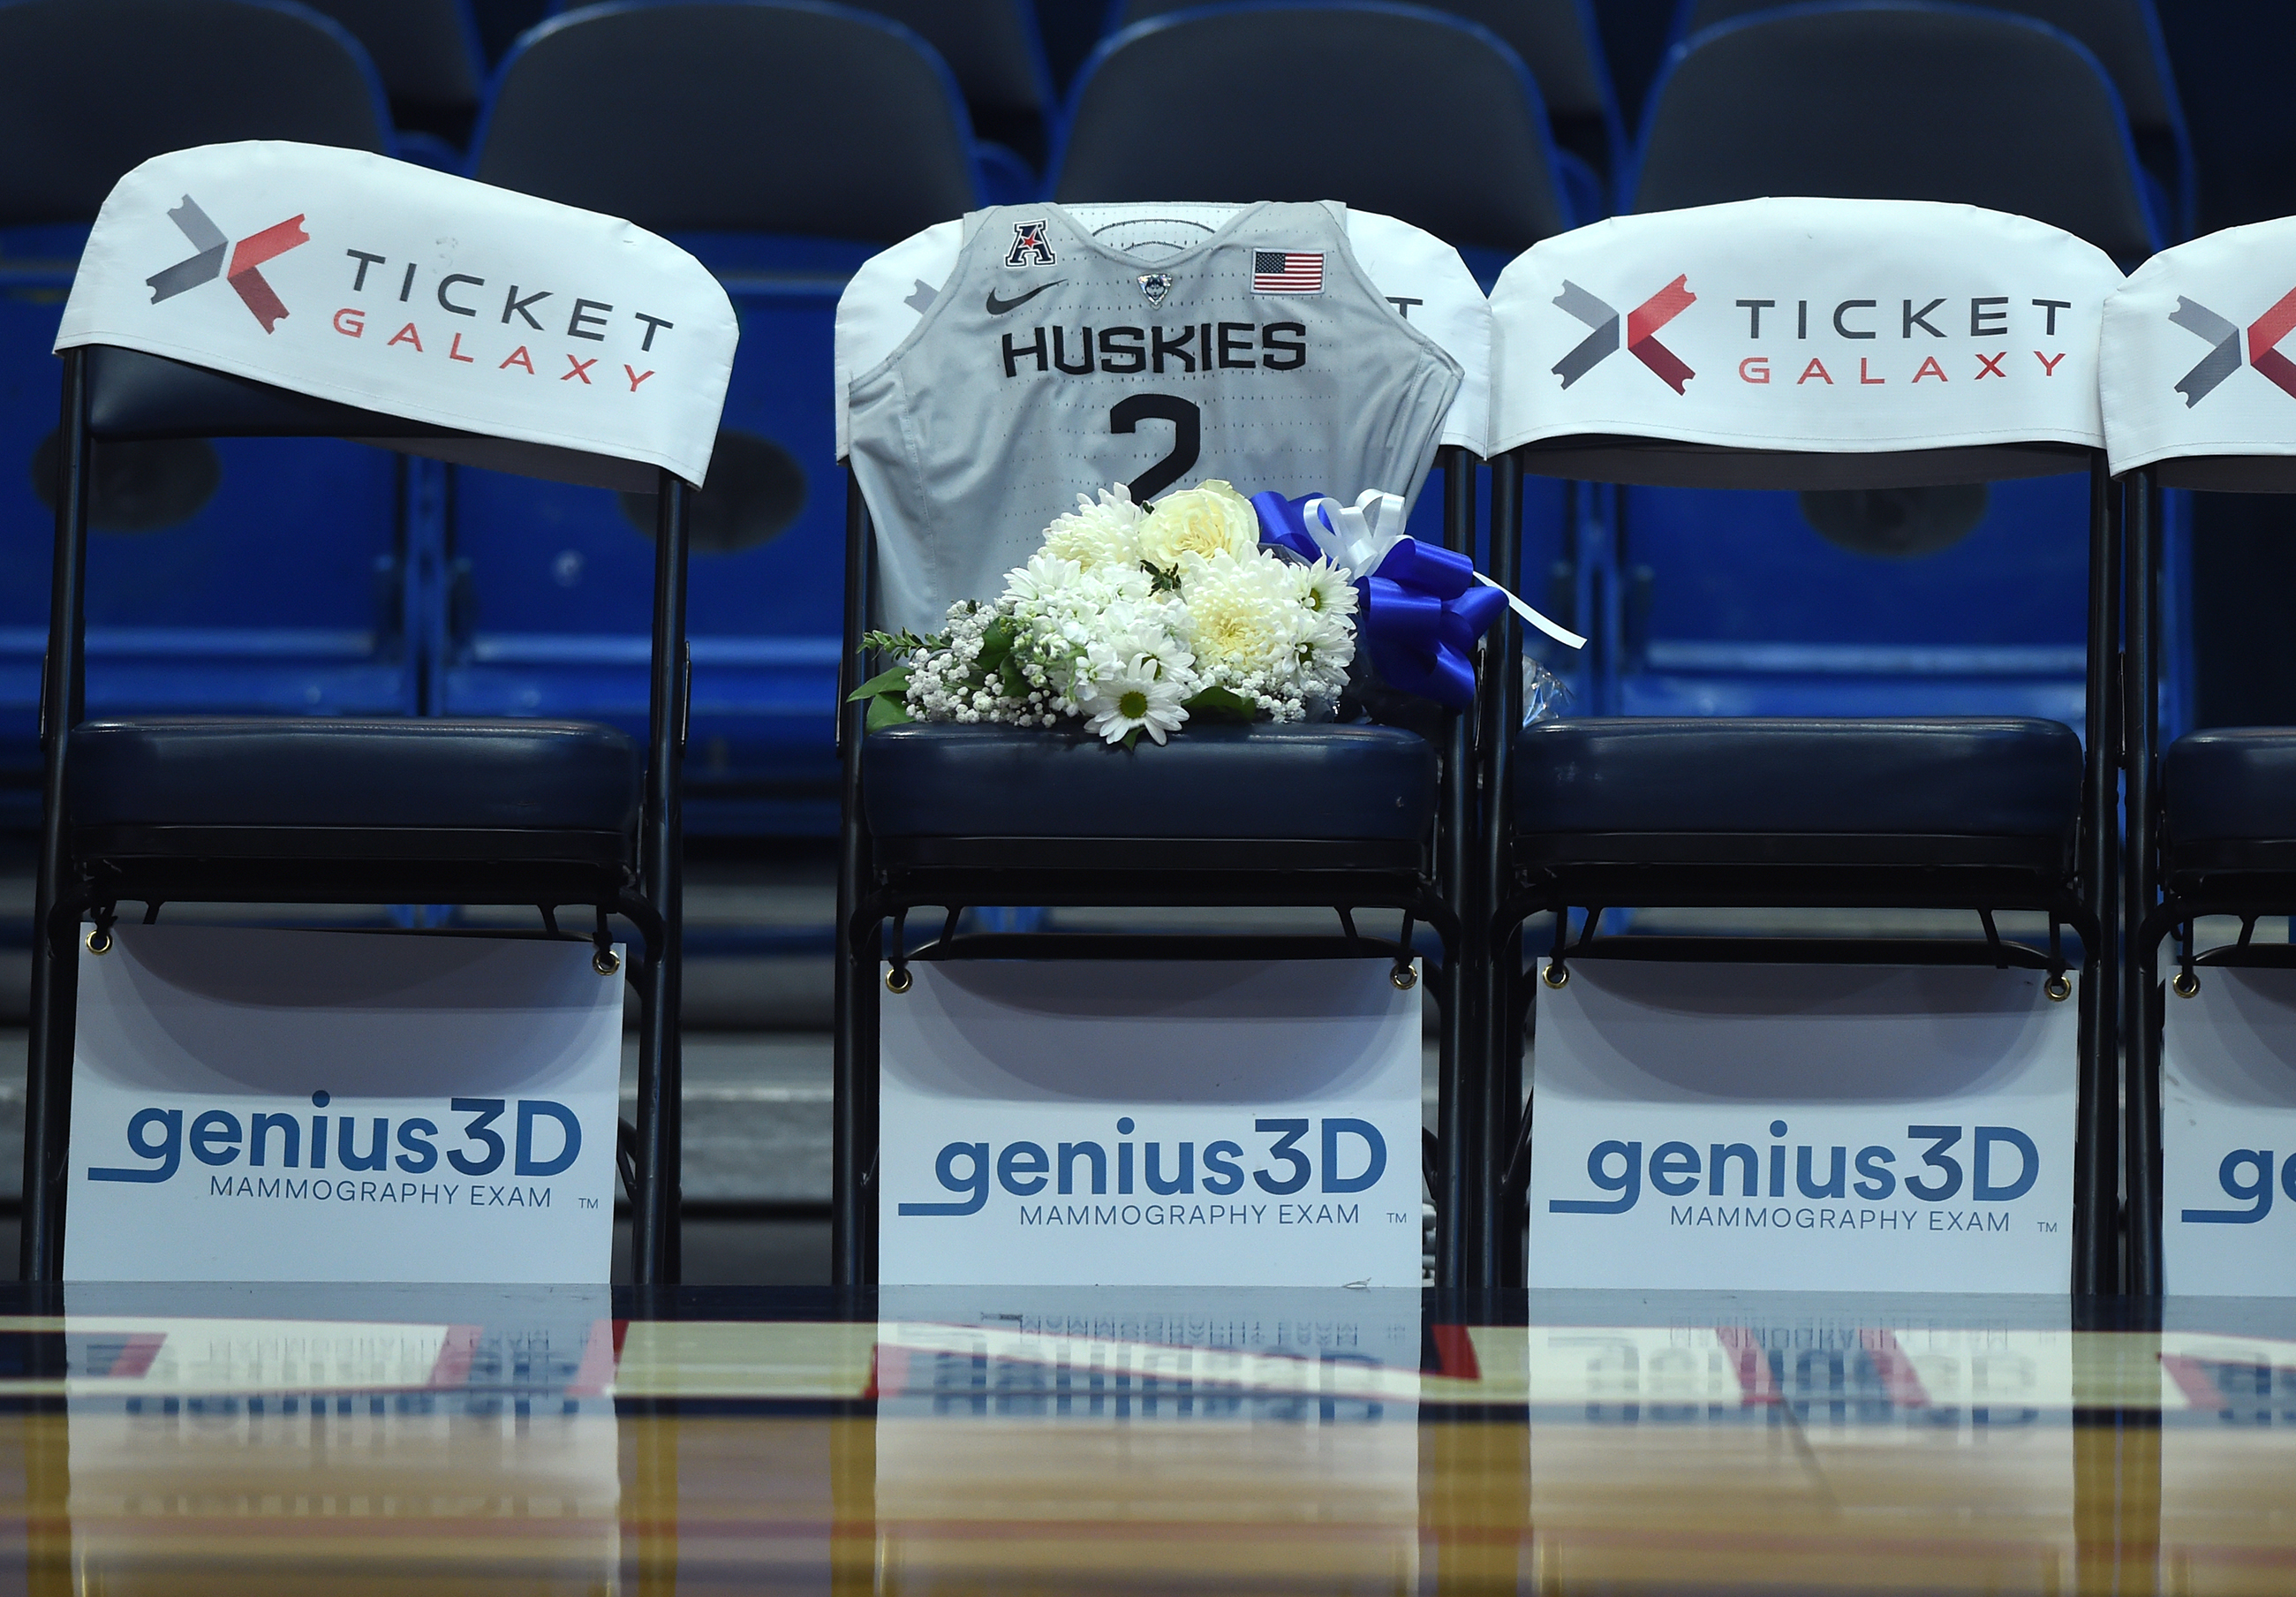 Uconn pay tribute to gianna bryant